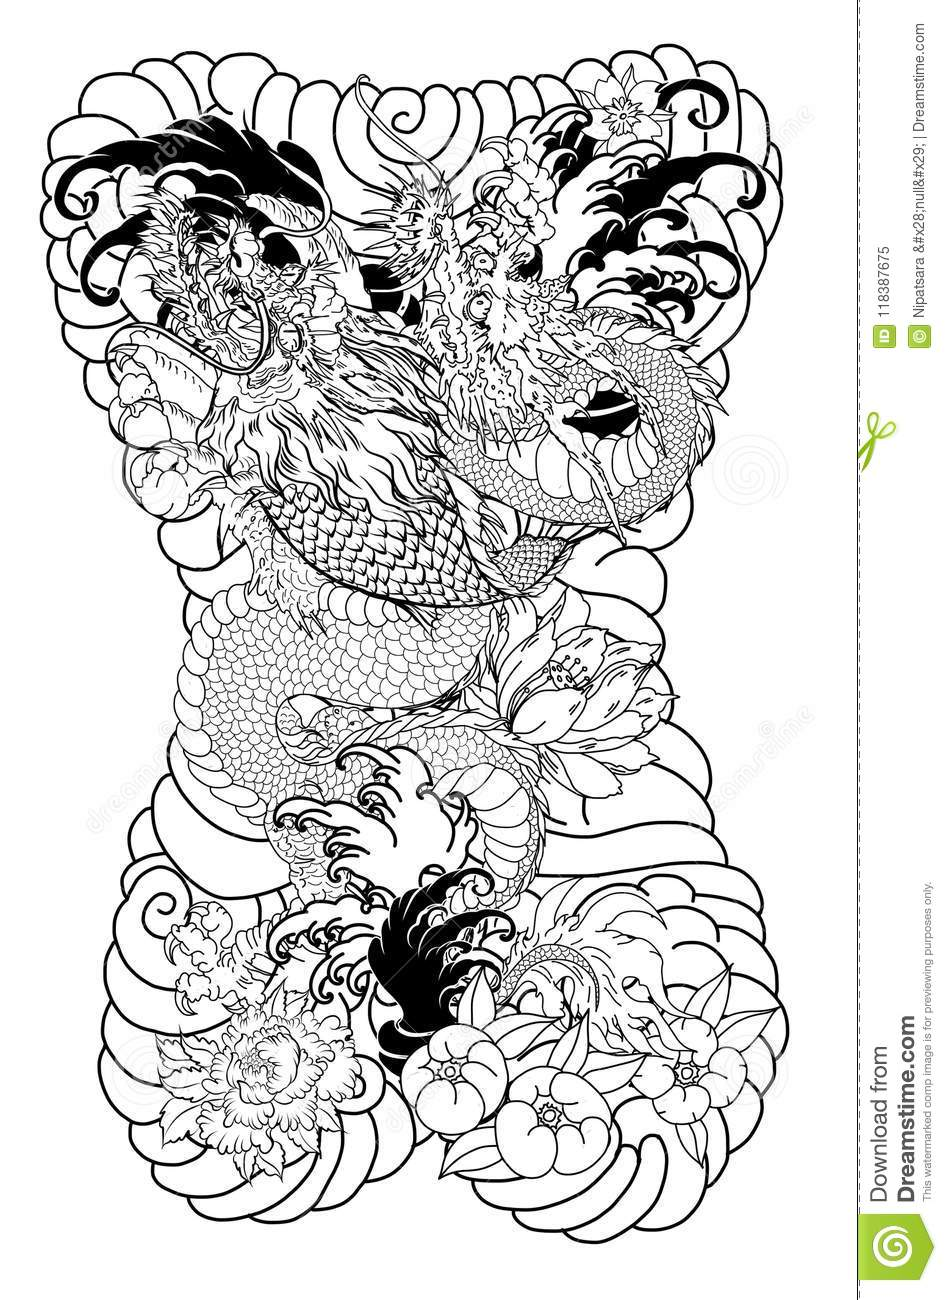 Dragon with koi dragon and lotus flower tattooach with sakura and dragon with koi dragon and lotus flower tattooach with sakura and plum flower on cloud background isolated drawn izmirmasajfo